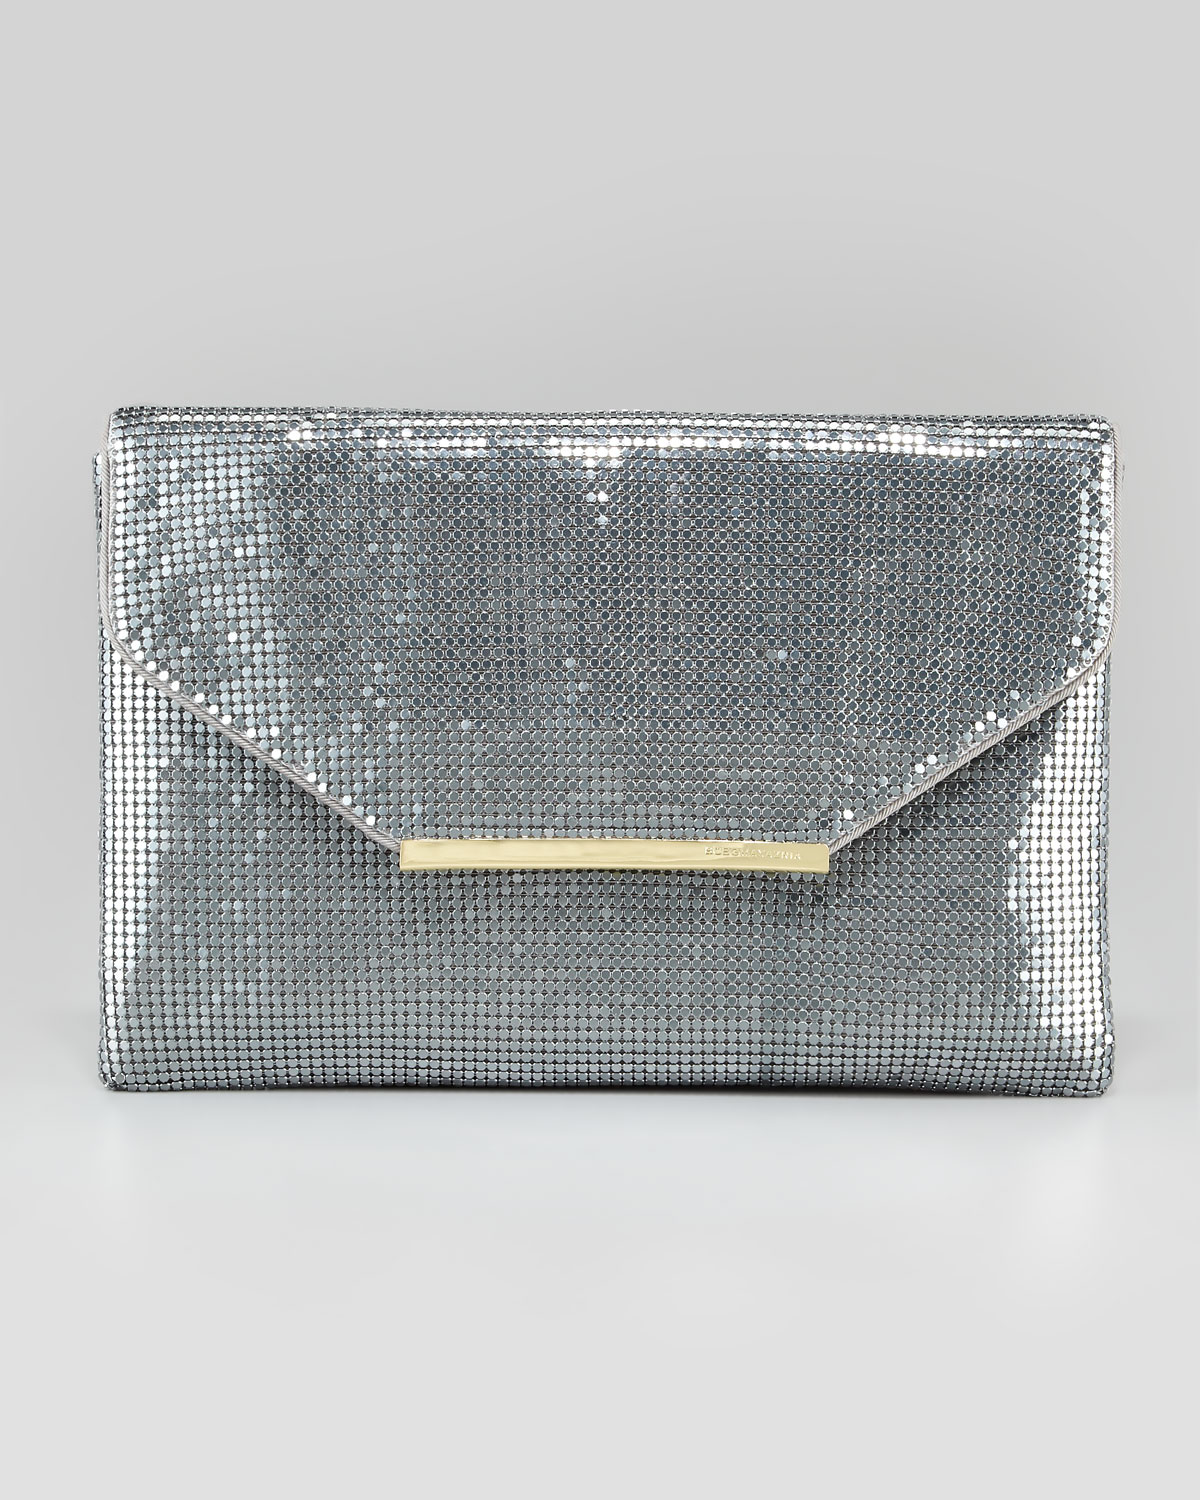 Bcbgmaxazria Harlow Metallic Chainmail Envelope Clutch Bag in ...